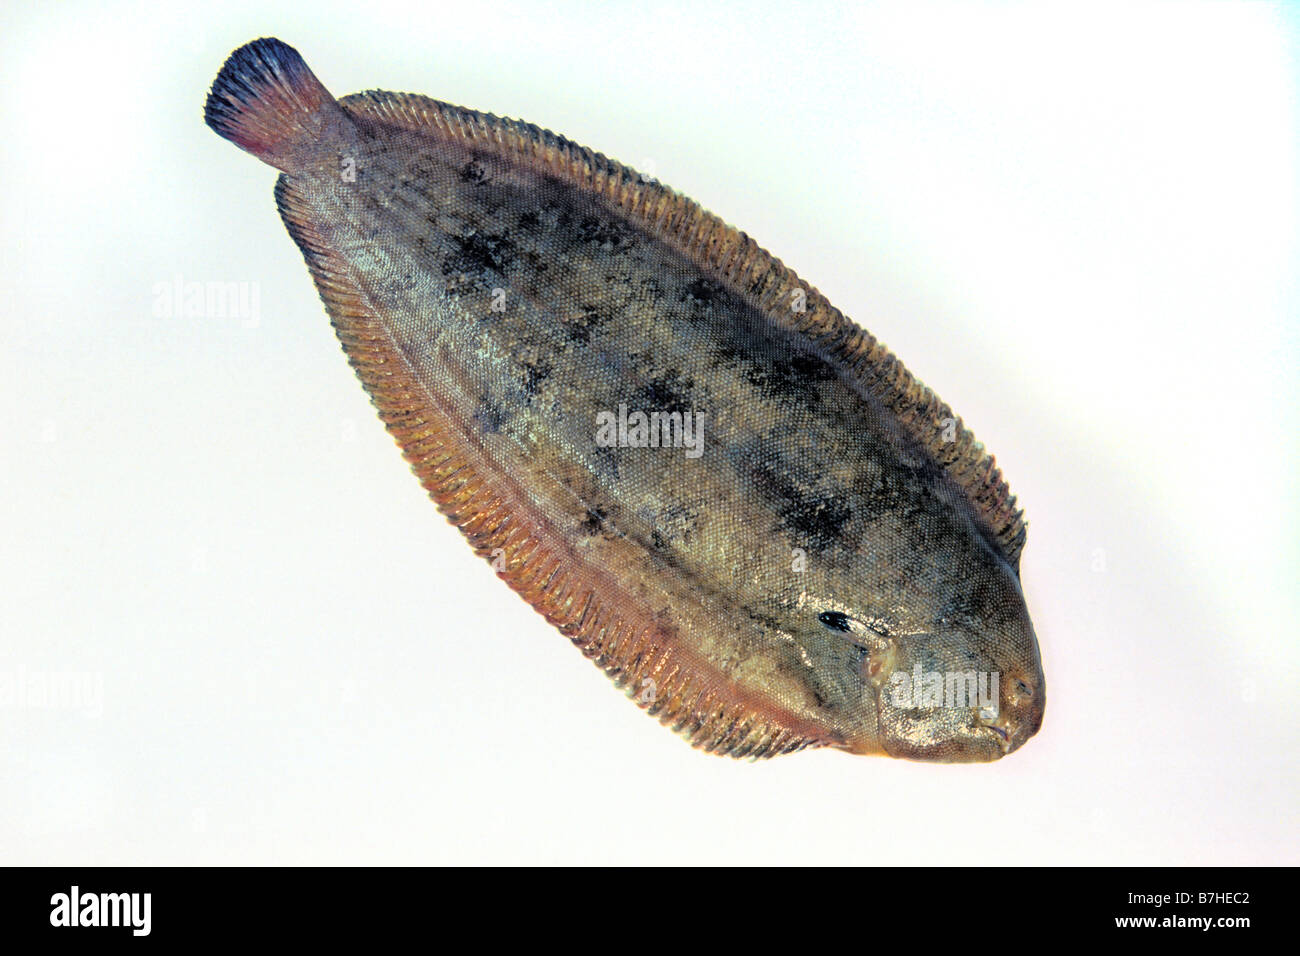 Dover Sole, Common Sole (Solea solea), studio picture - Stock Image